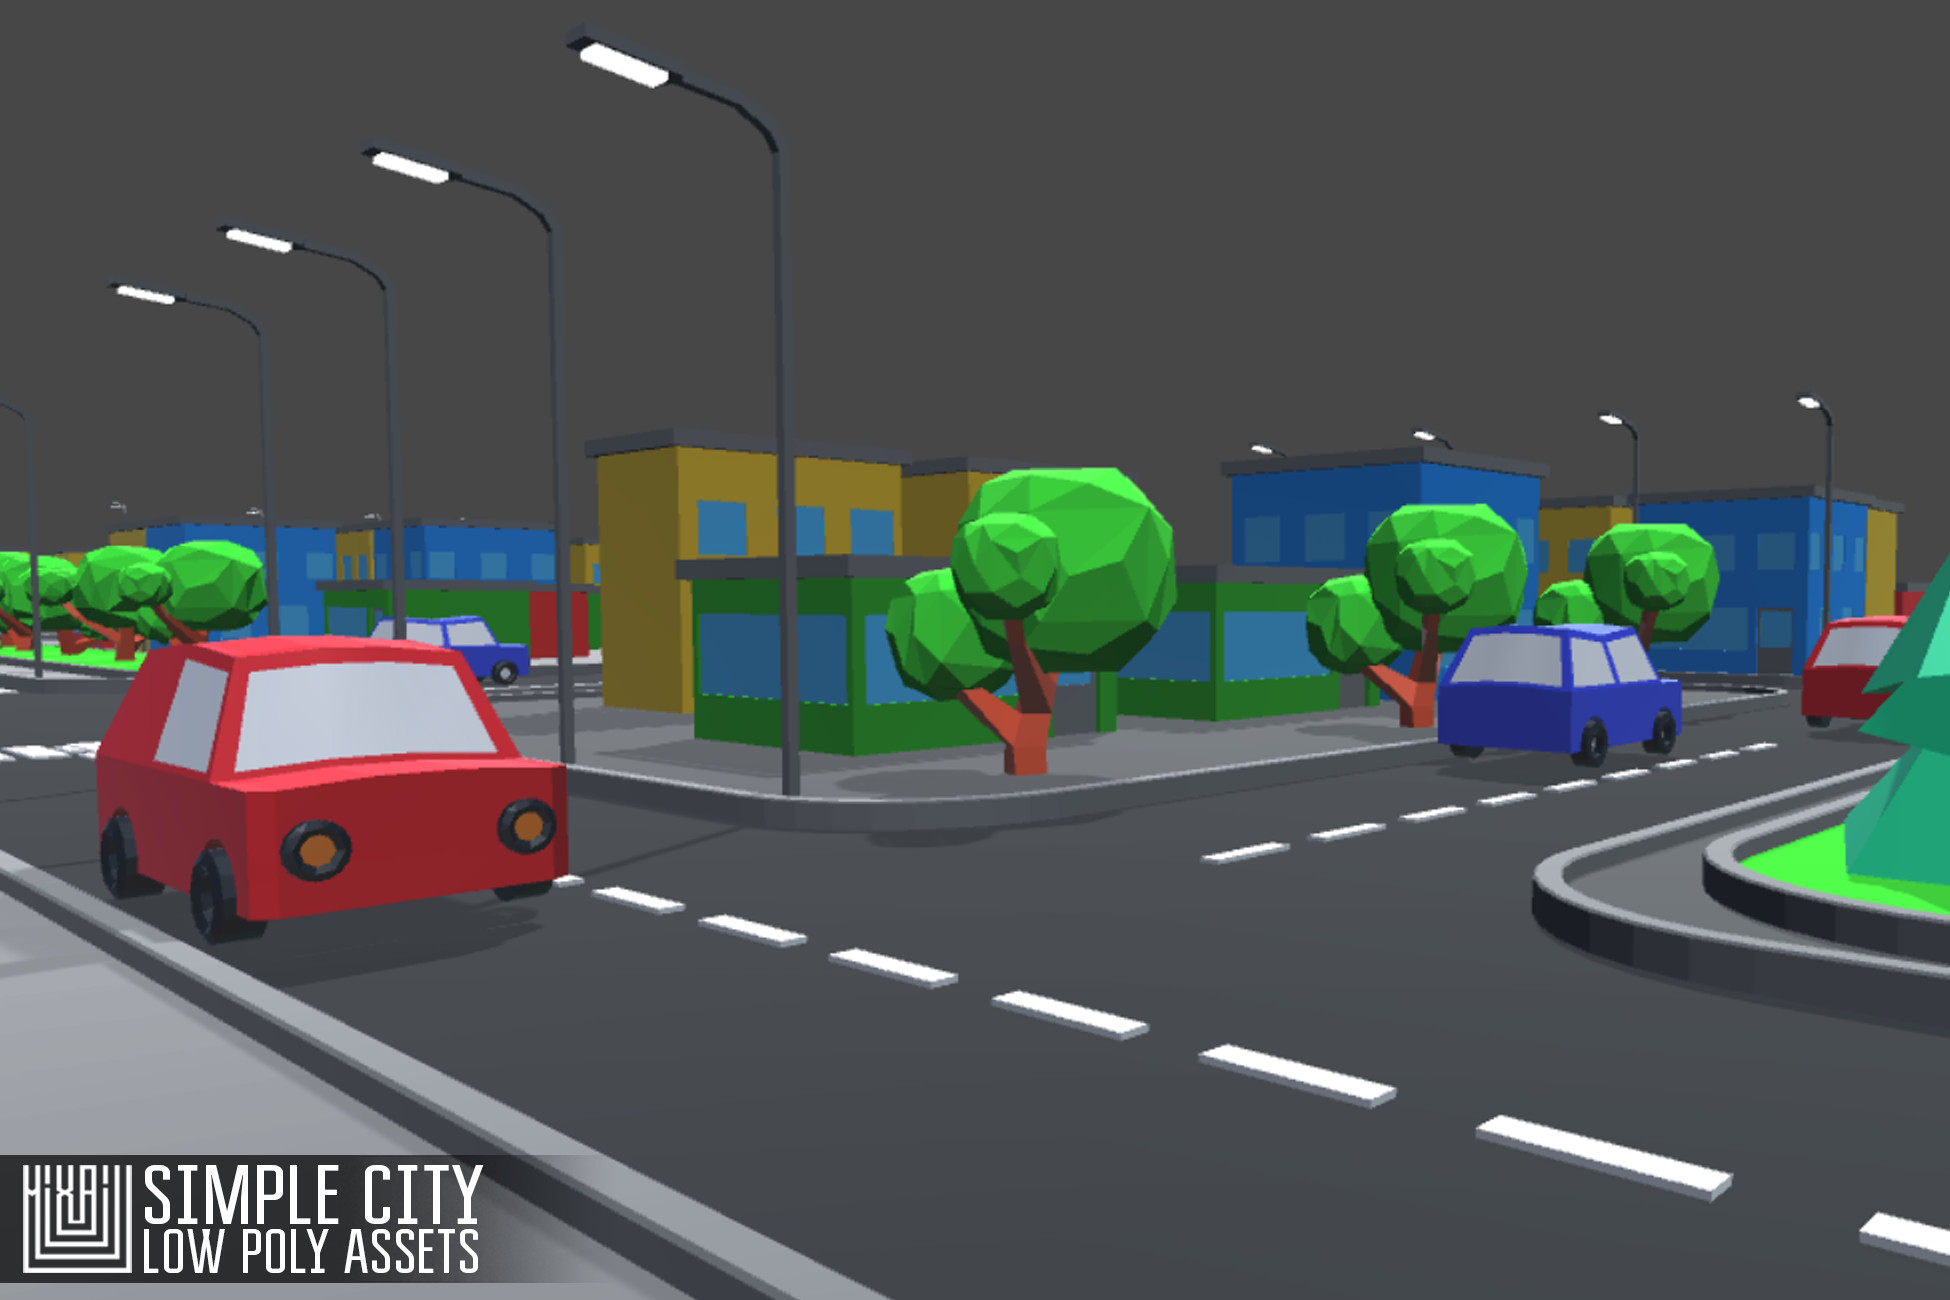 Simple City - Low Poly Assets